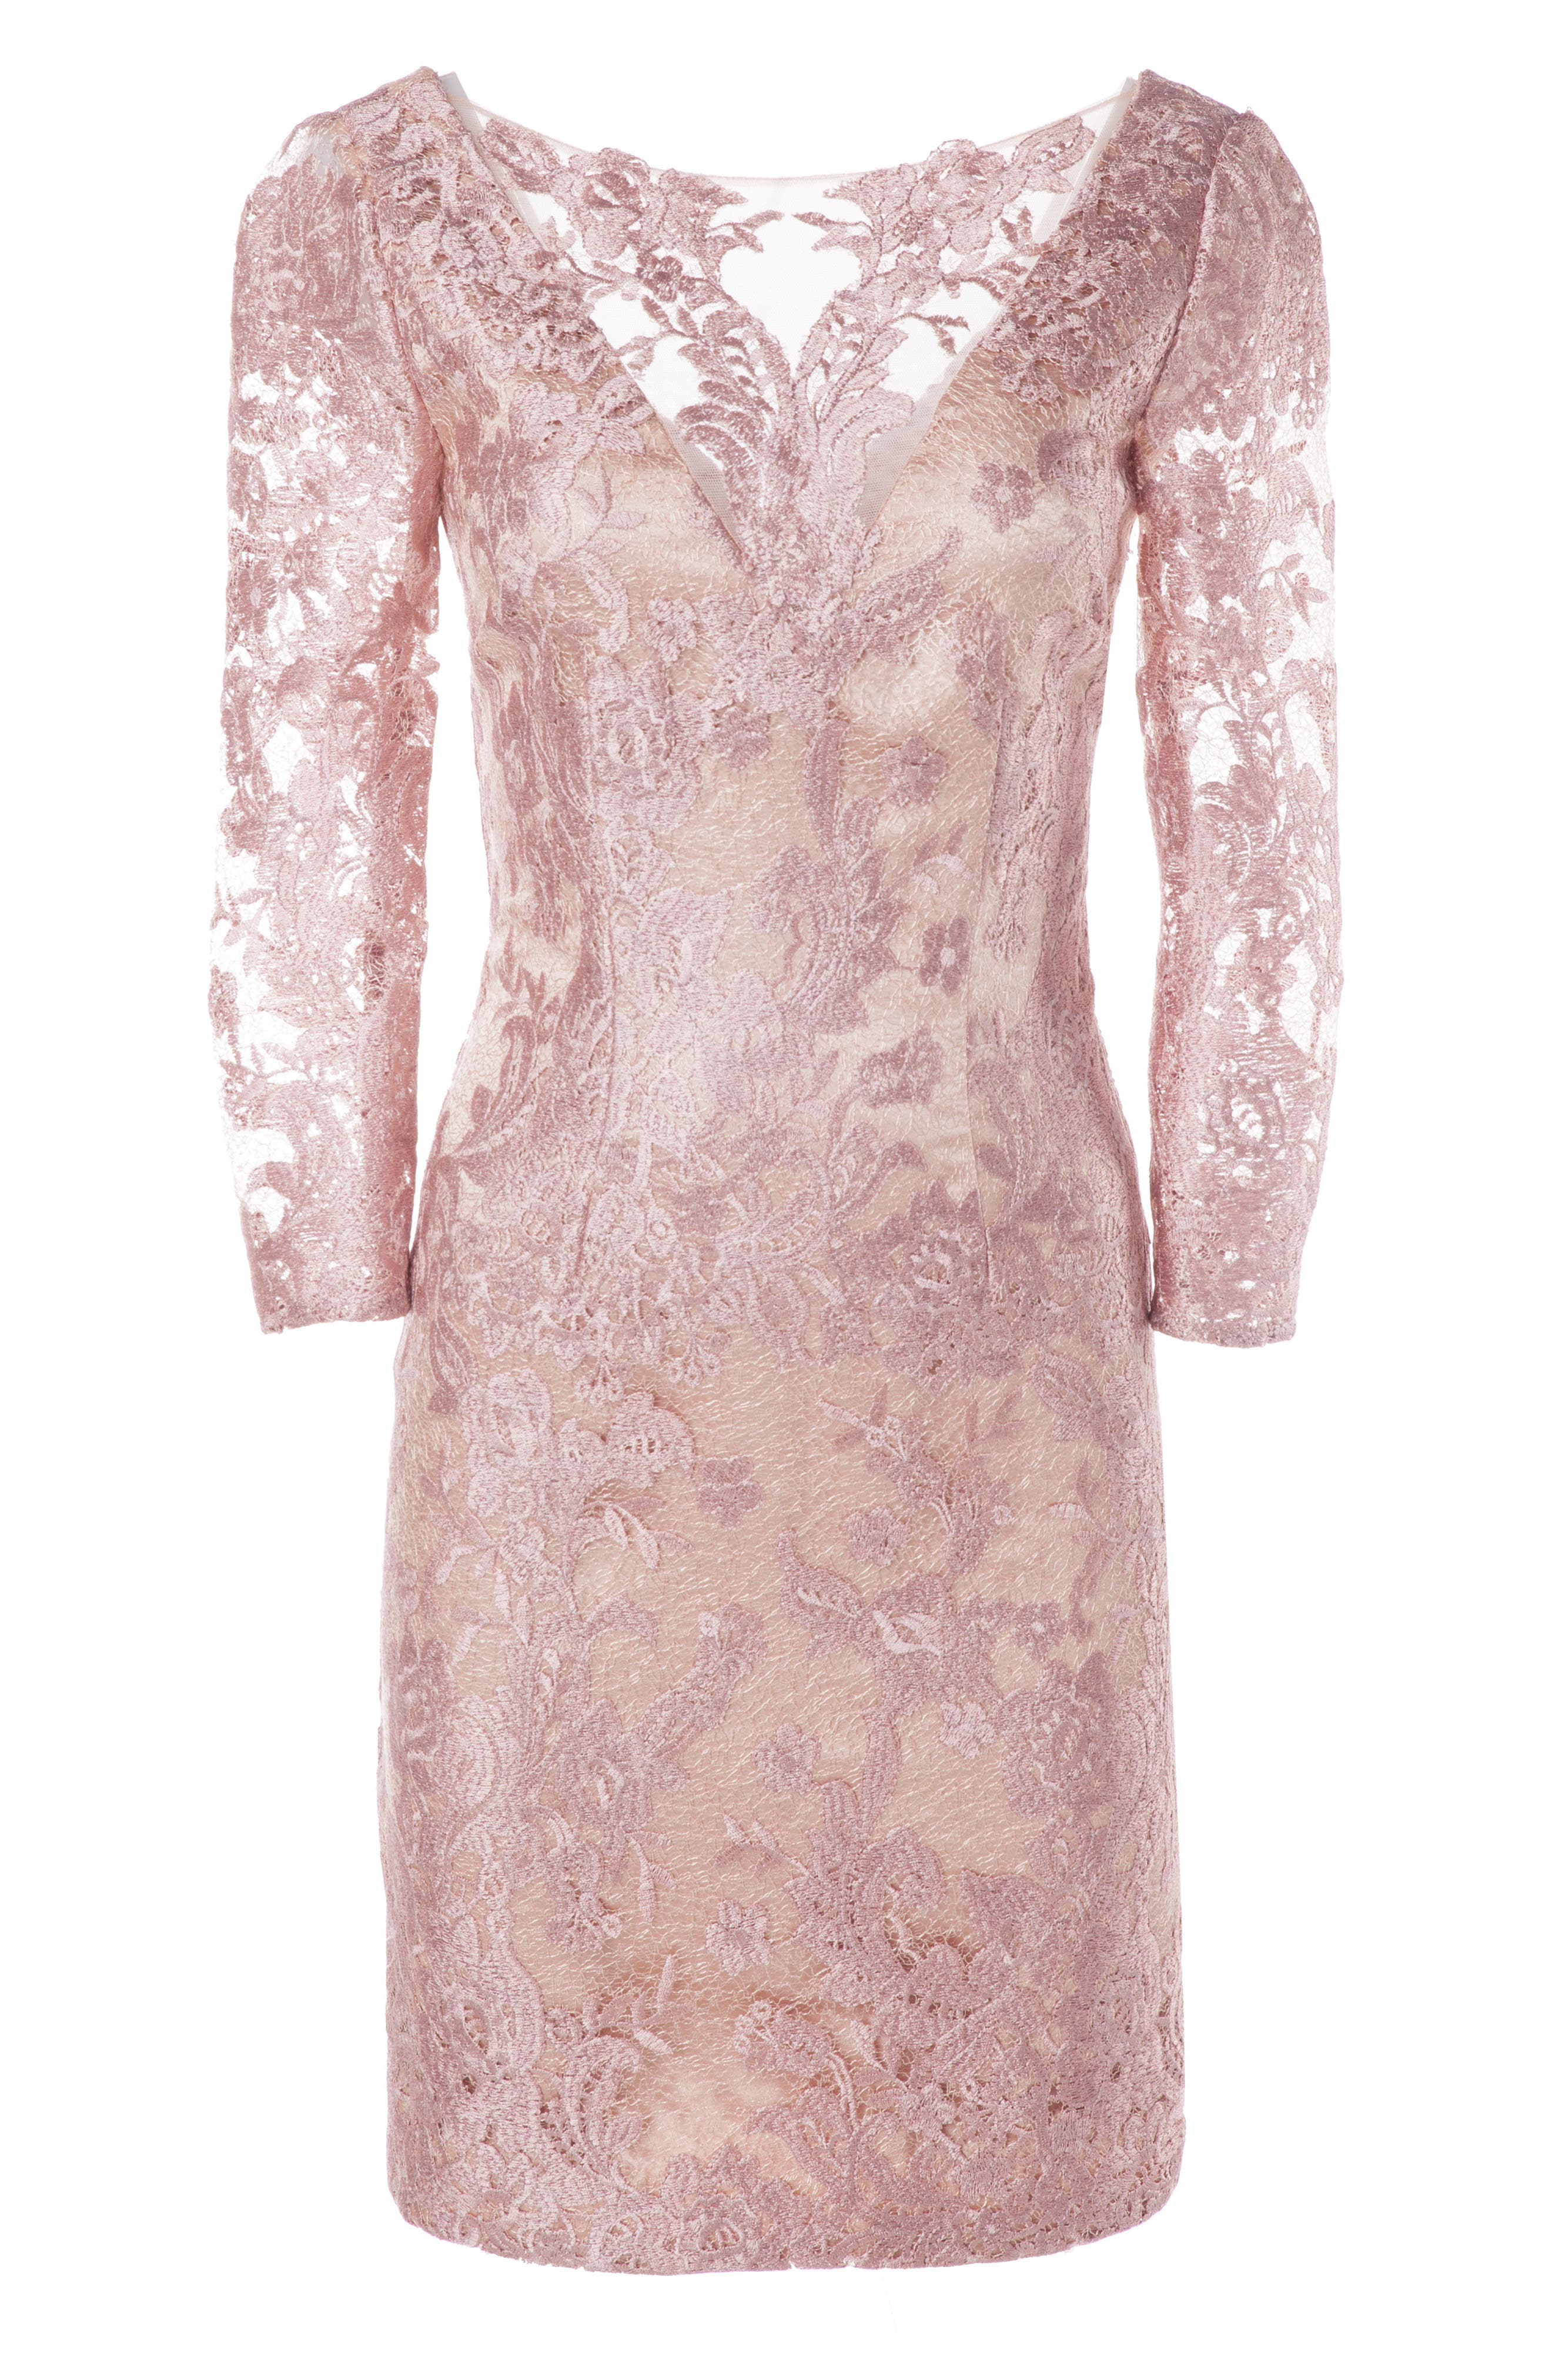 Embroidered Lace Cocktail Dress,                             Alternate thumbnail 3, color,                             LILAC/ PINK